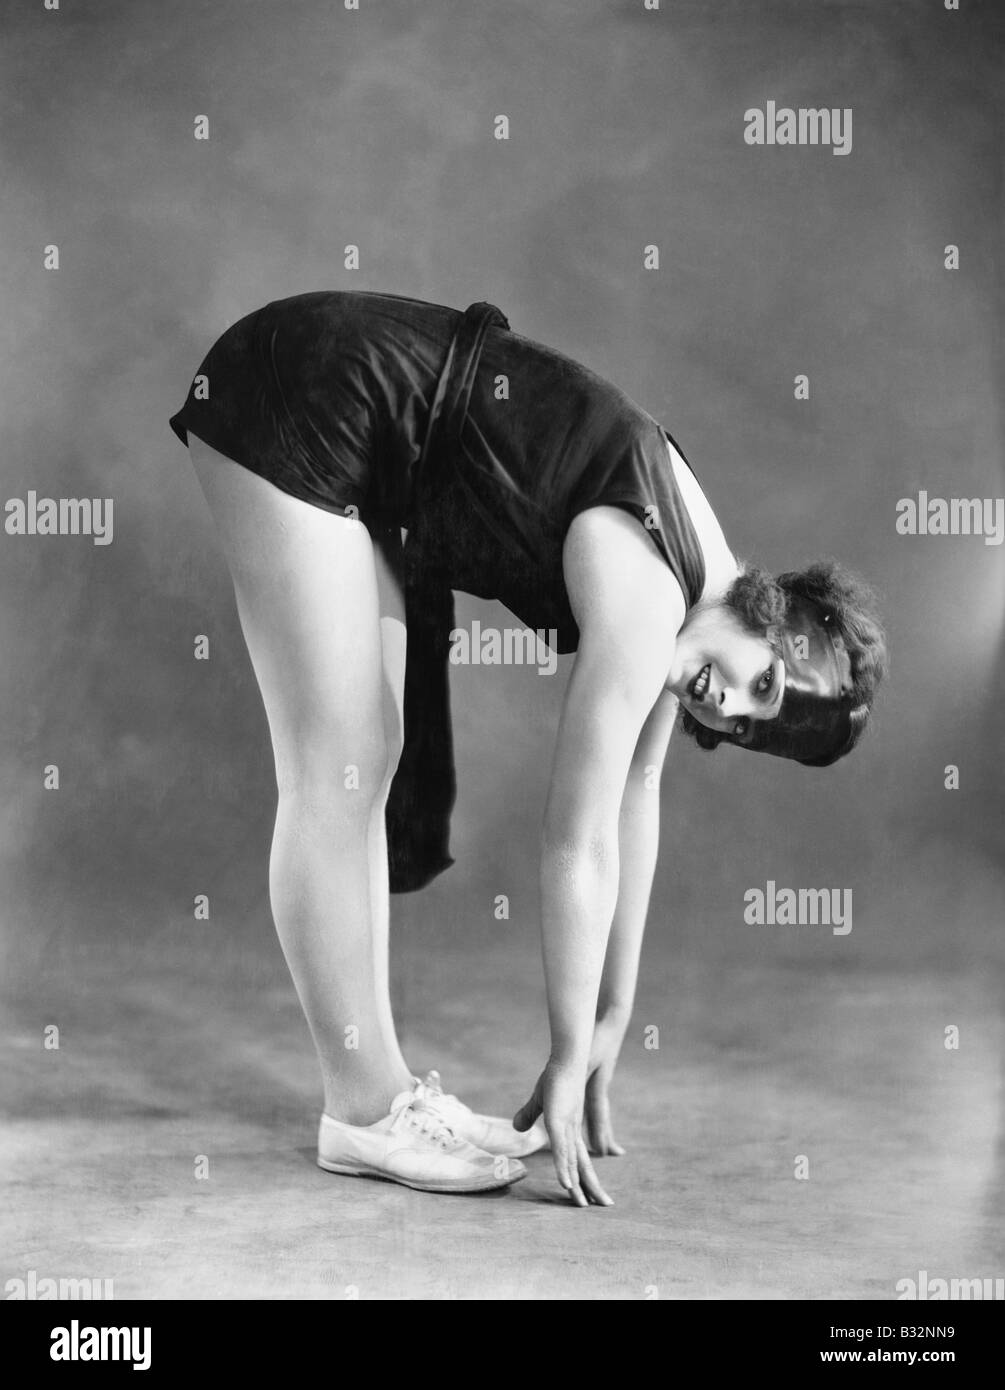 Woman touching toes - Stock Image